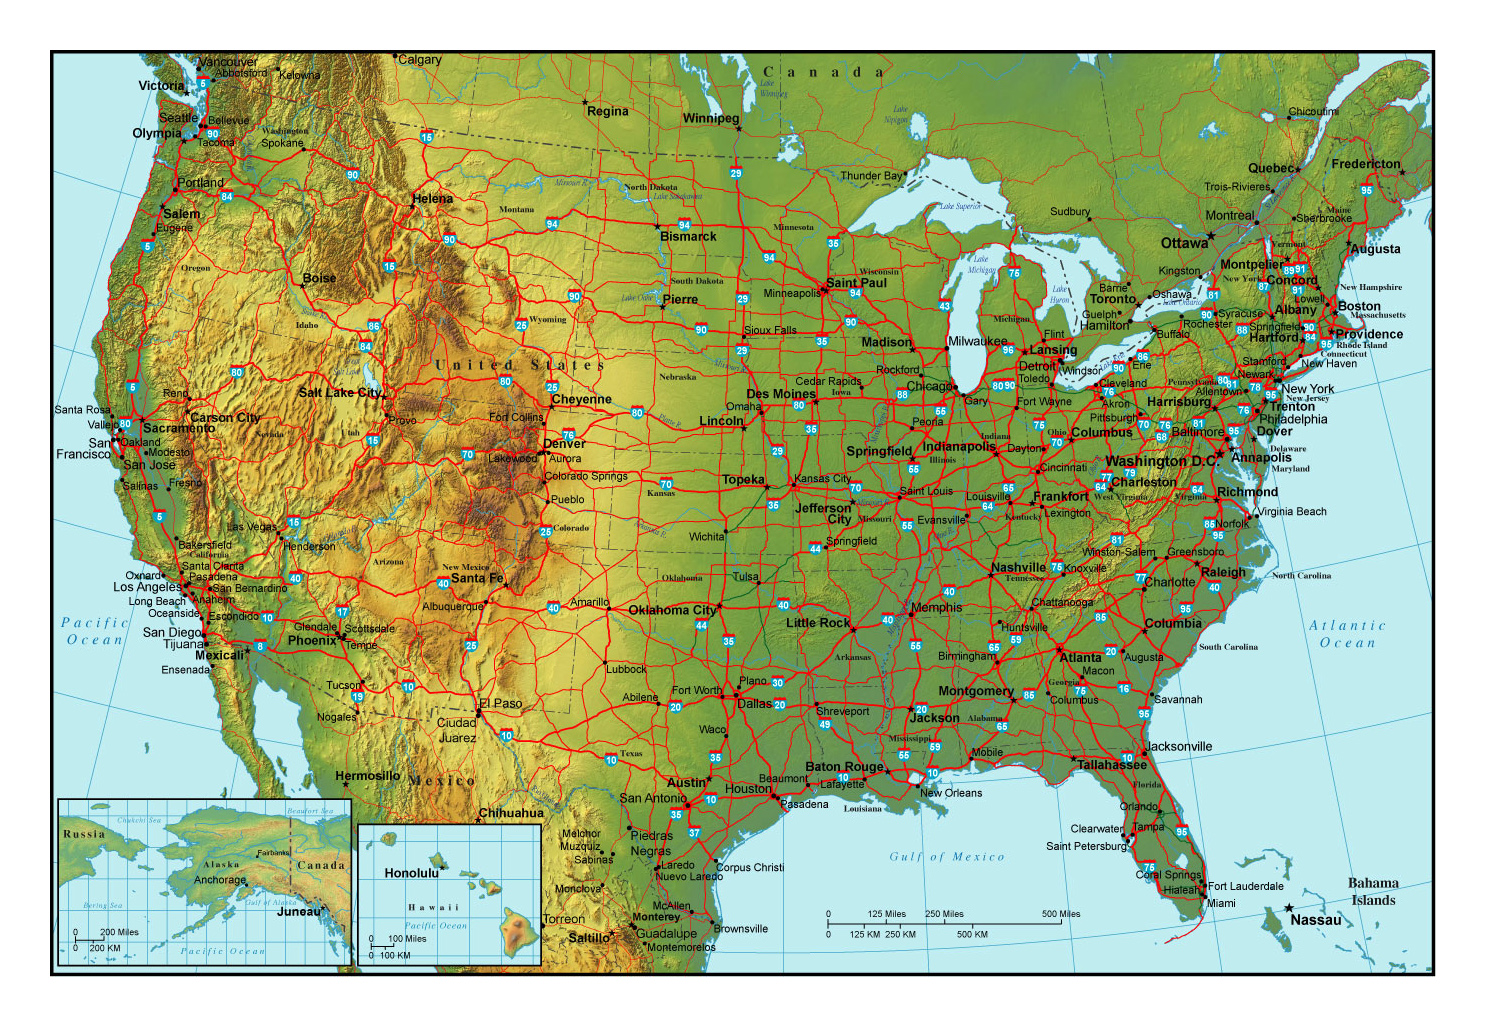 Topographical map of the USA with highways and major cities ... on united states interstate system, united states roads, usa highways, east coast interstate highways, in the united states highways, us interstate highways, map of western united states highways, major us highways, united states map with highways and freeways, united states map major highways, montana highways, map of the united states and highways, map of oklahoma major highways, united states interstate highways, map of united states with highways,